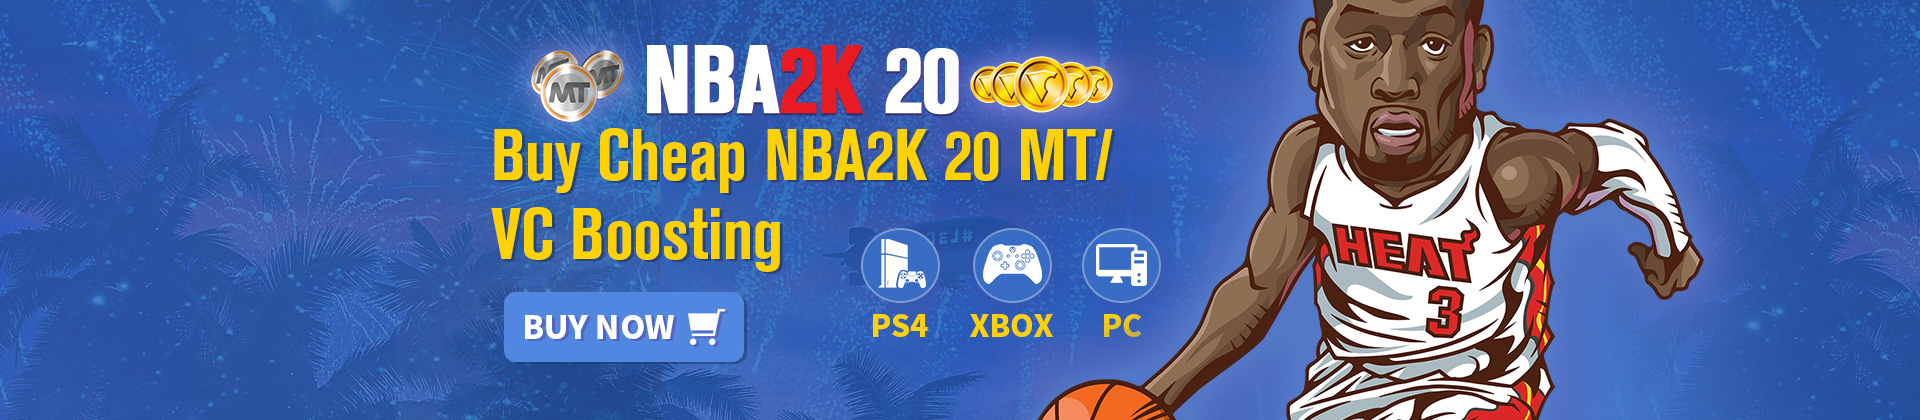 Buy NBA 2K20 MT